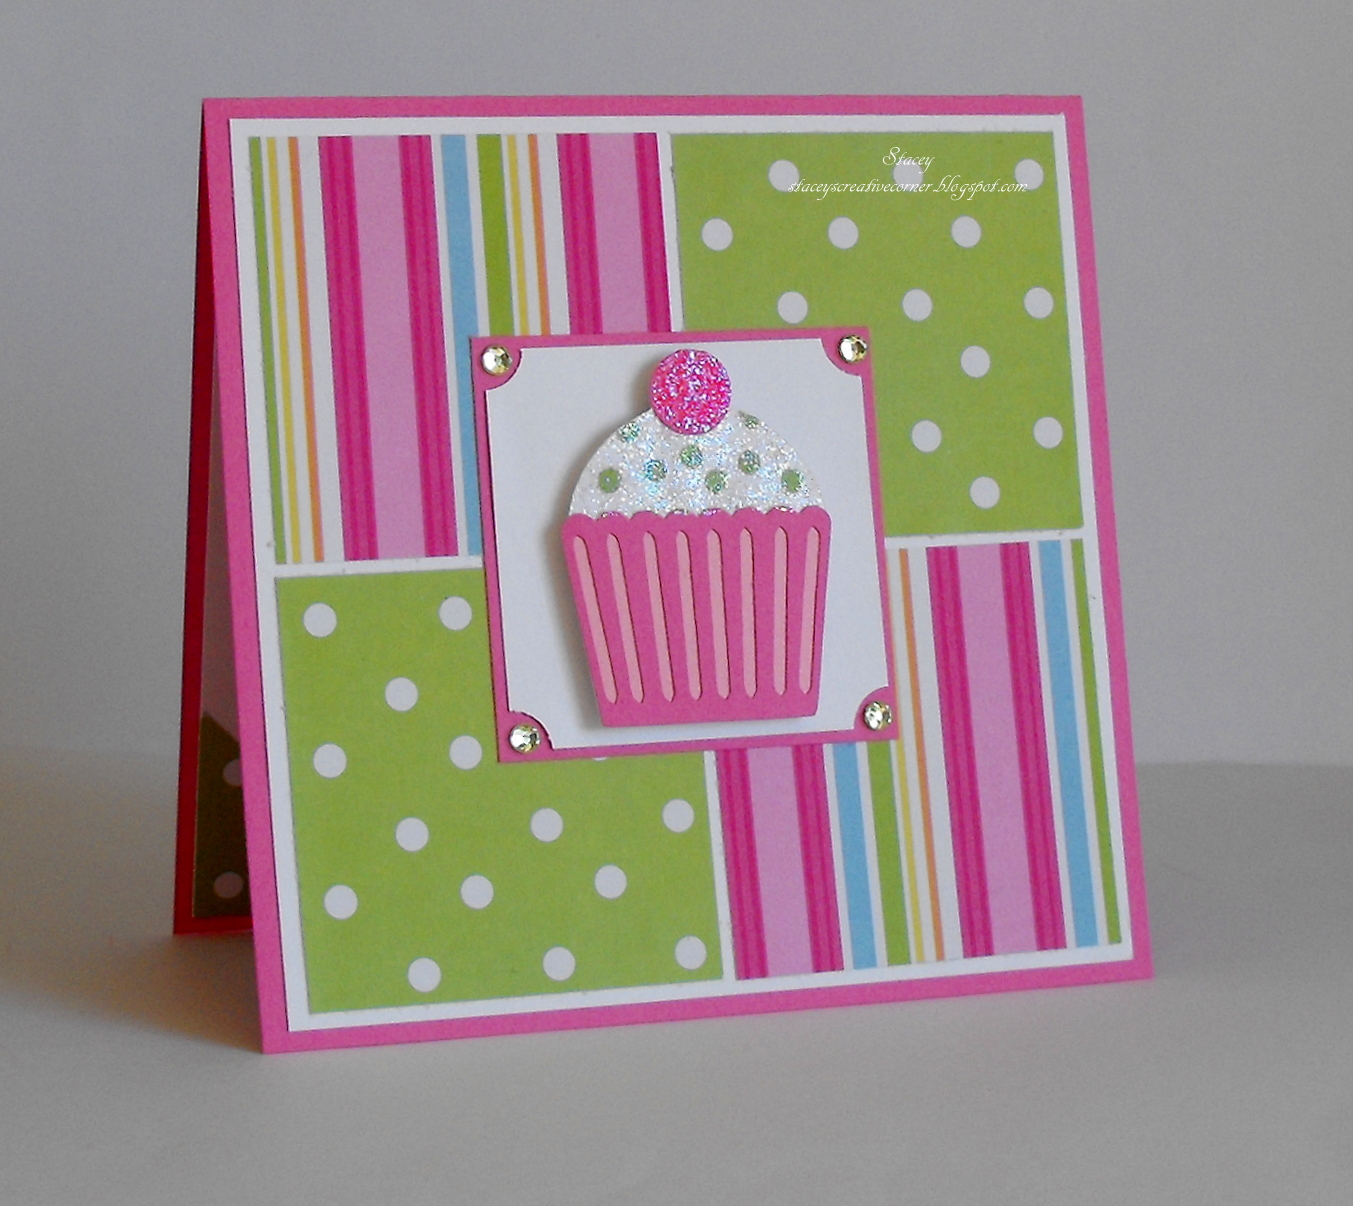 Stacey's Creative Corner: Birthday Card With Sketches